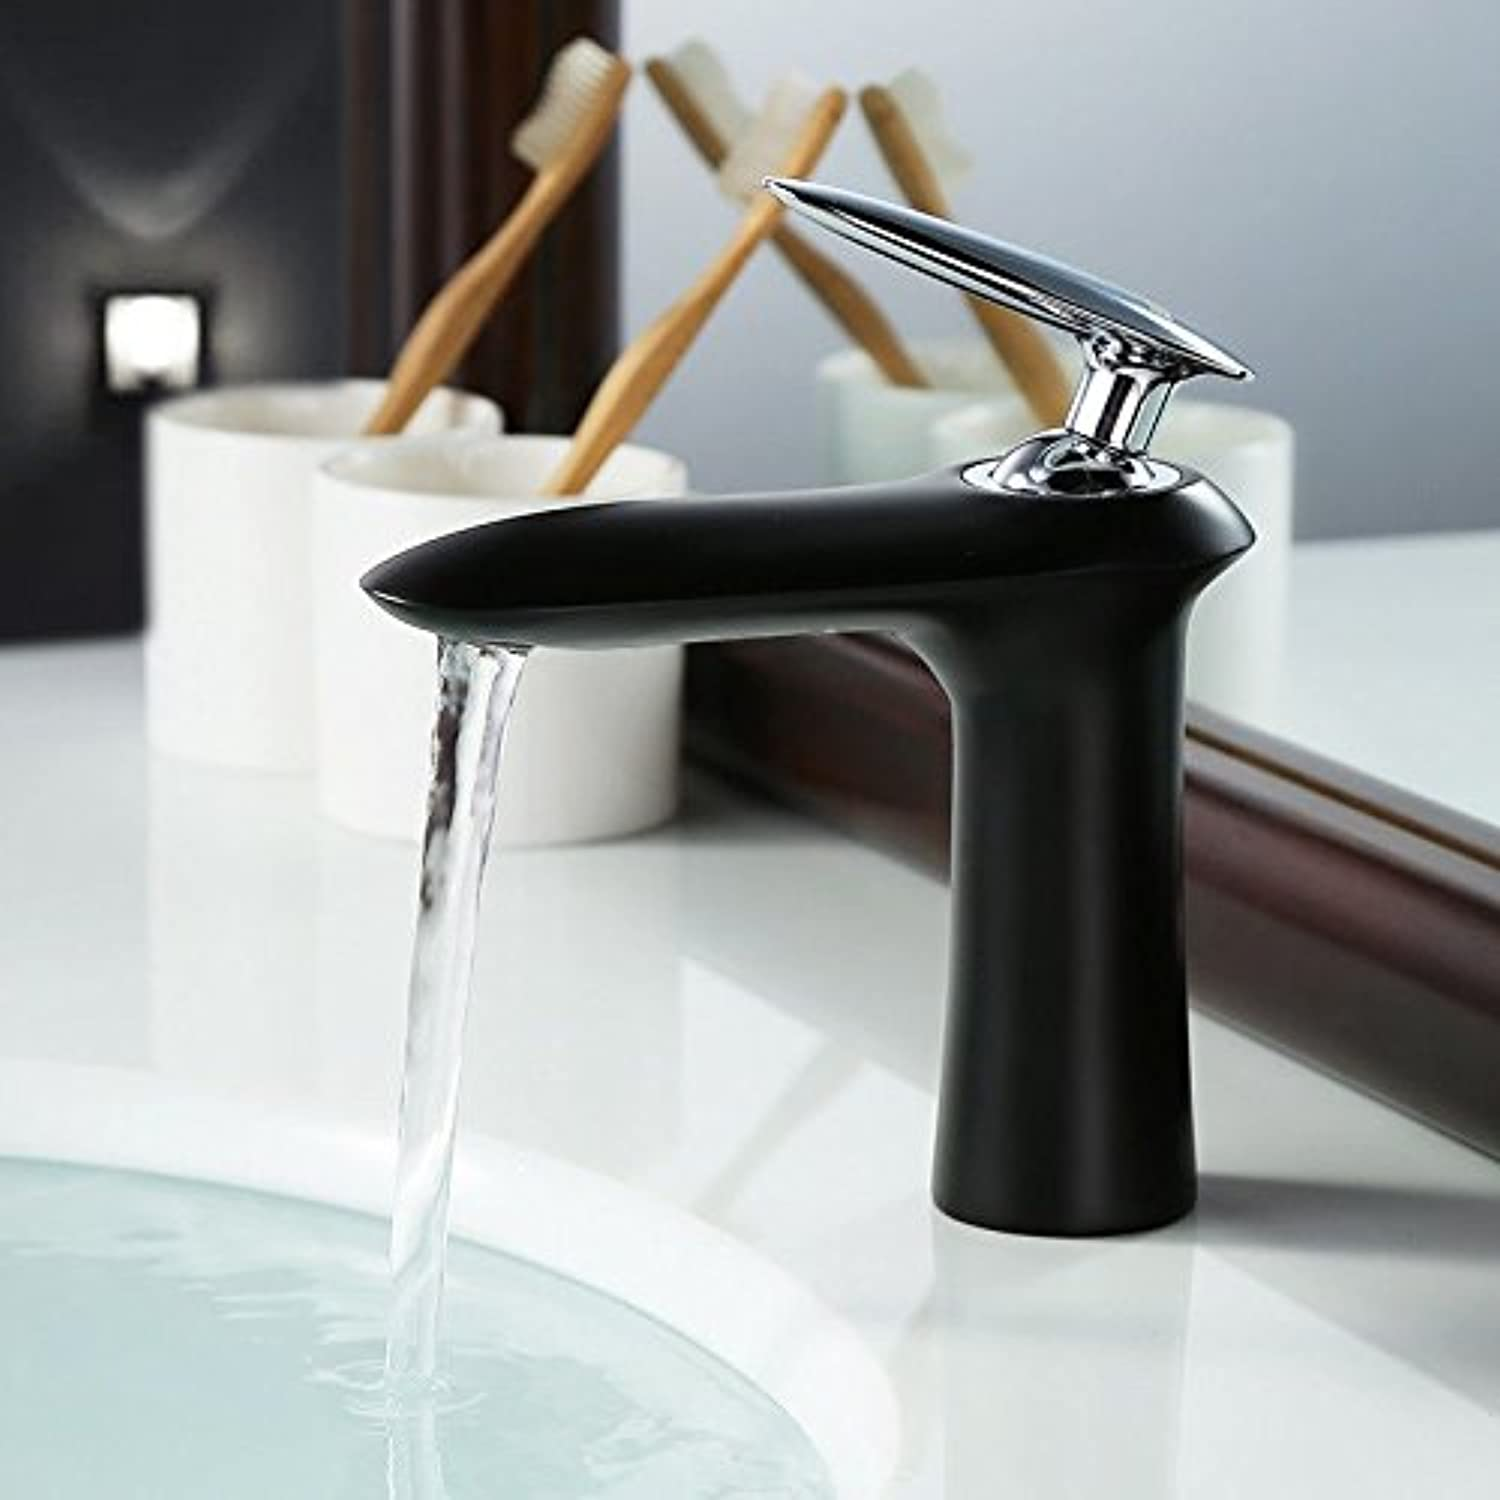 Hlluya Professional Sink Mixer Tap Kitchen Faucet Basin taps full copper hot and cold black